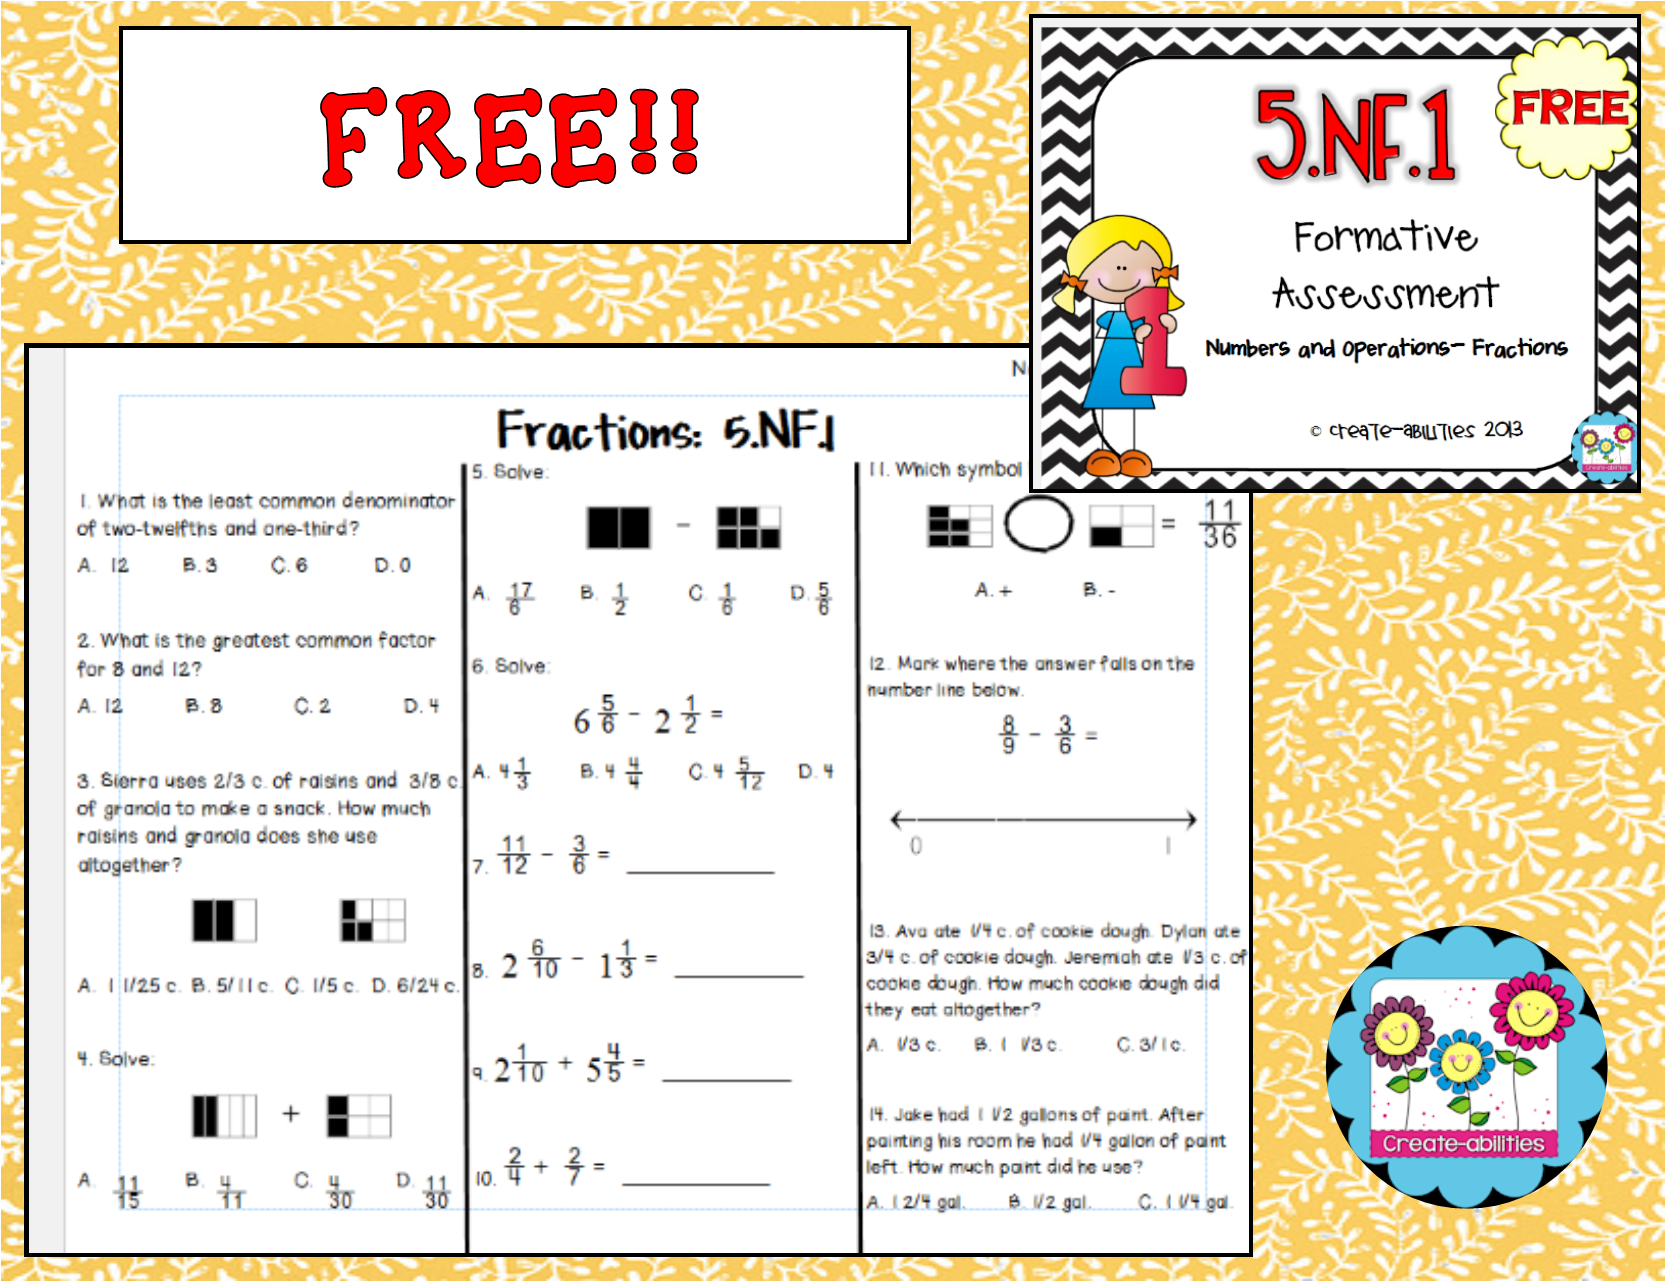 Free 5 Nf 1 Formative Assessment And Answer Key A Free